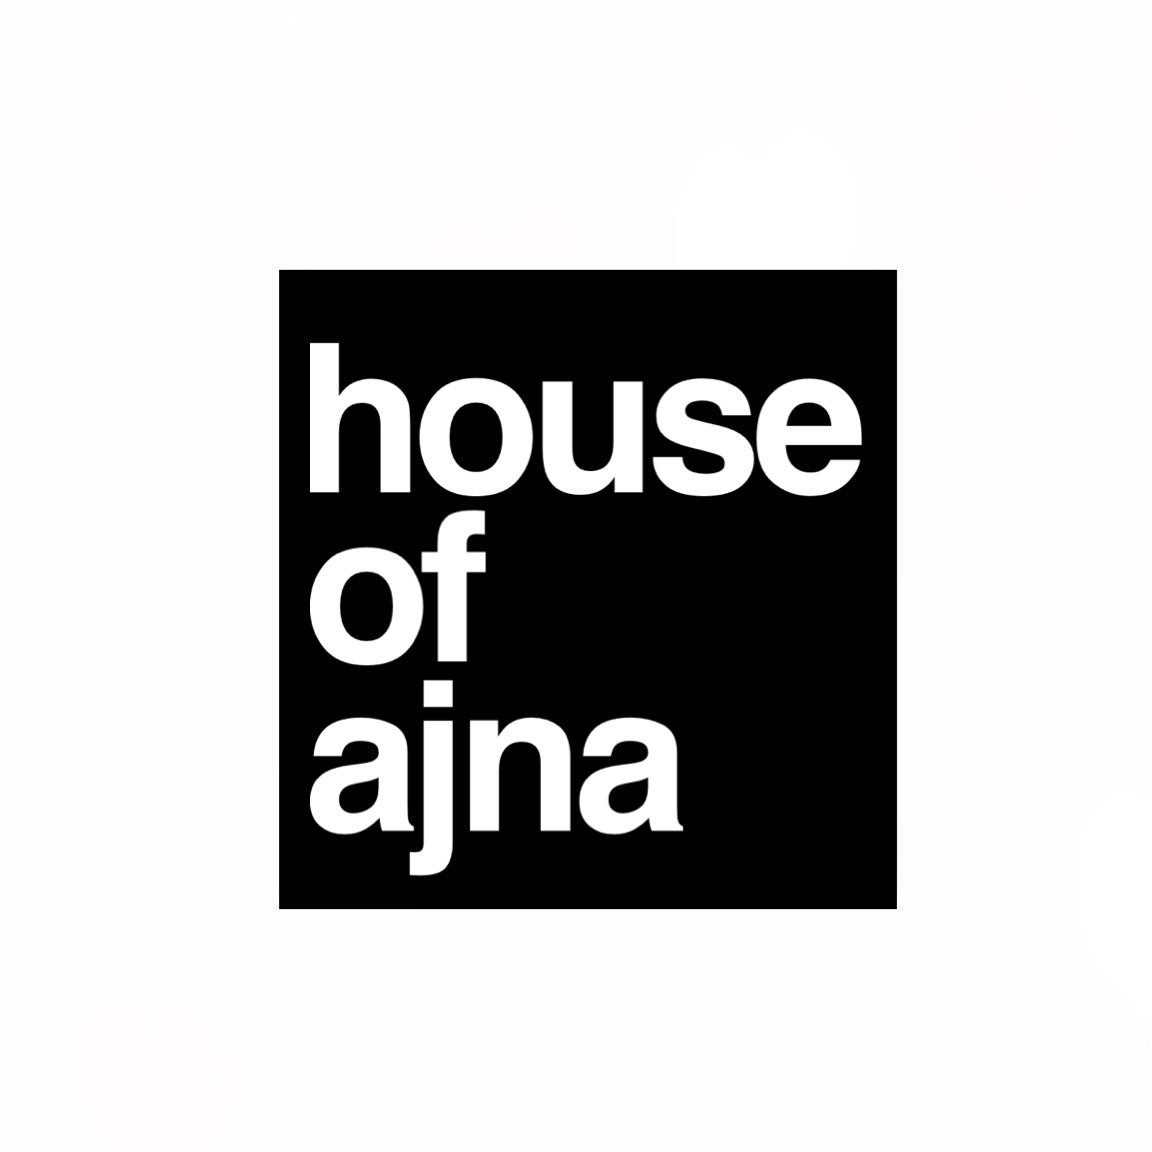 House Of Ajna